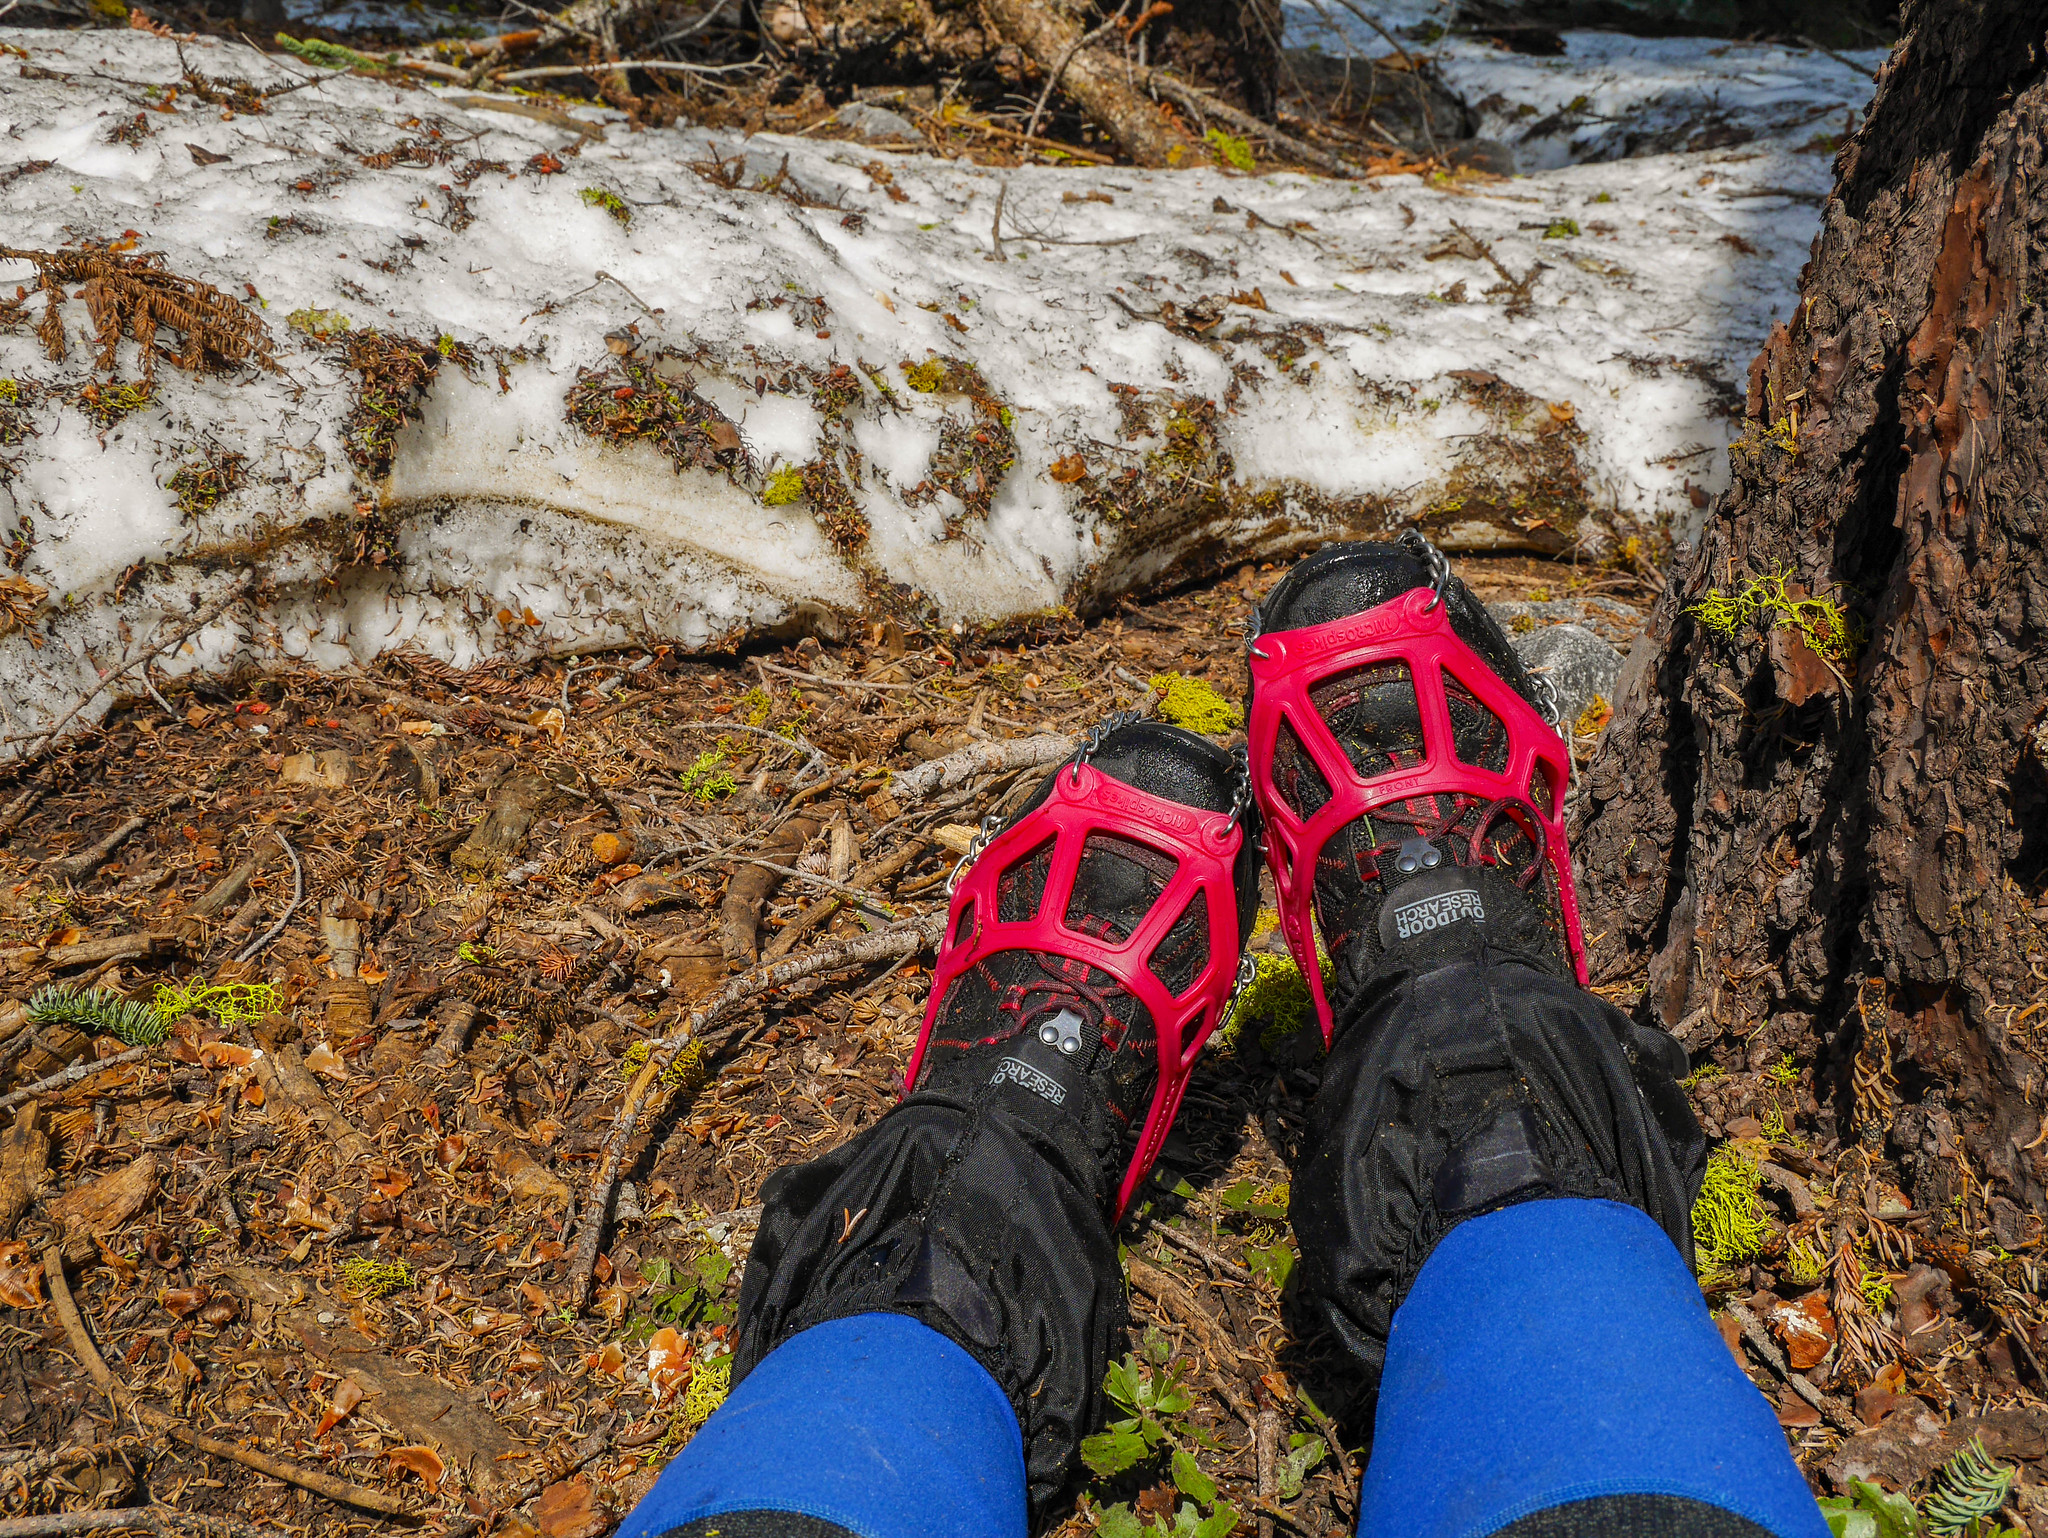 A steepish snowfield with a runout off a cliff made me put on my microspikes